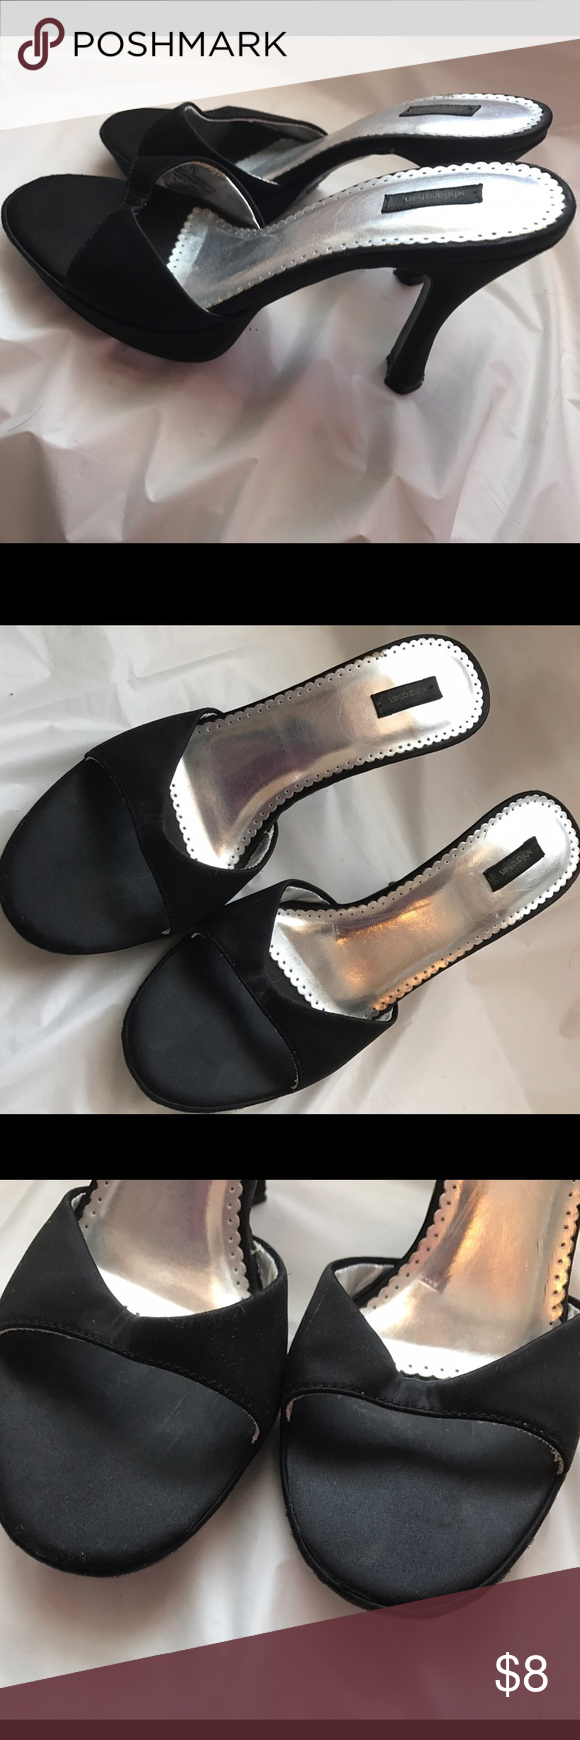 Size 6 Black Heels Size 6 Black Heels. Shoes have been worn once for a wedding. Please review all photos and ask questions prior to purchase.  Heels are from a smoke and pet free home. Xhilaration Shoes Heels